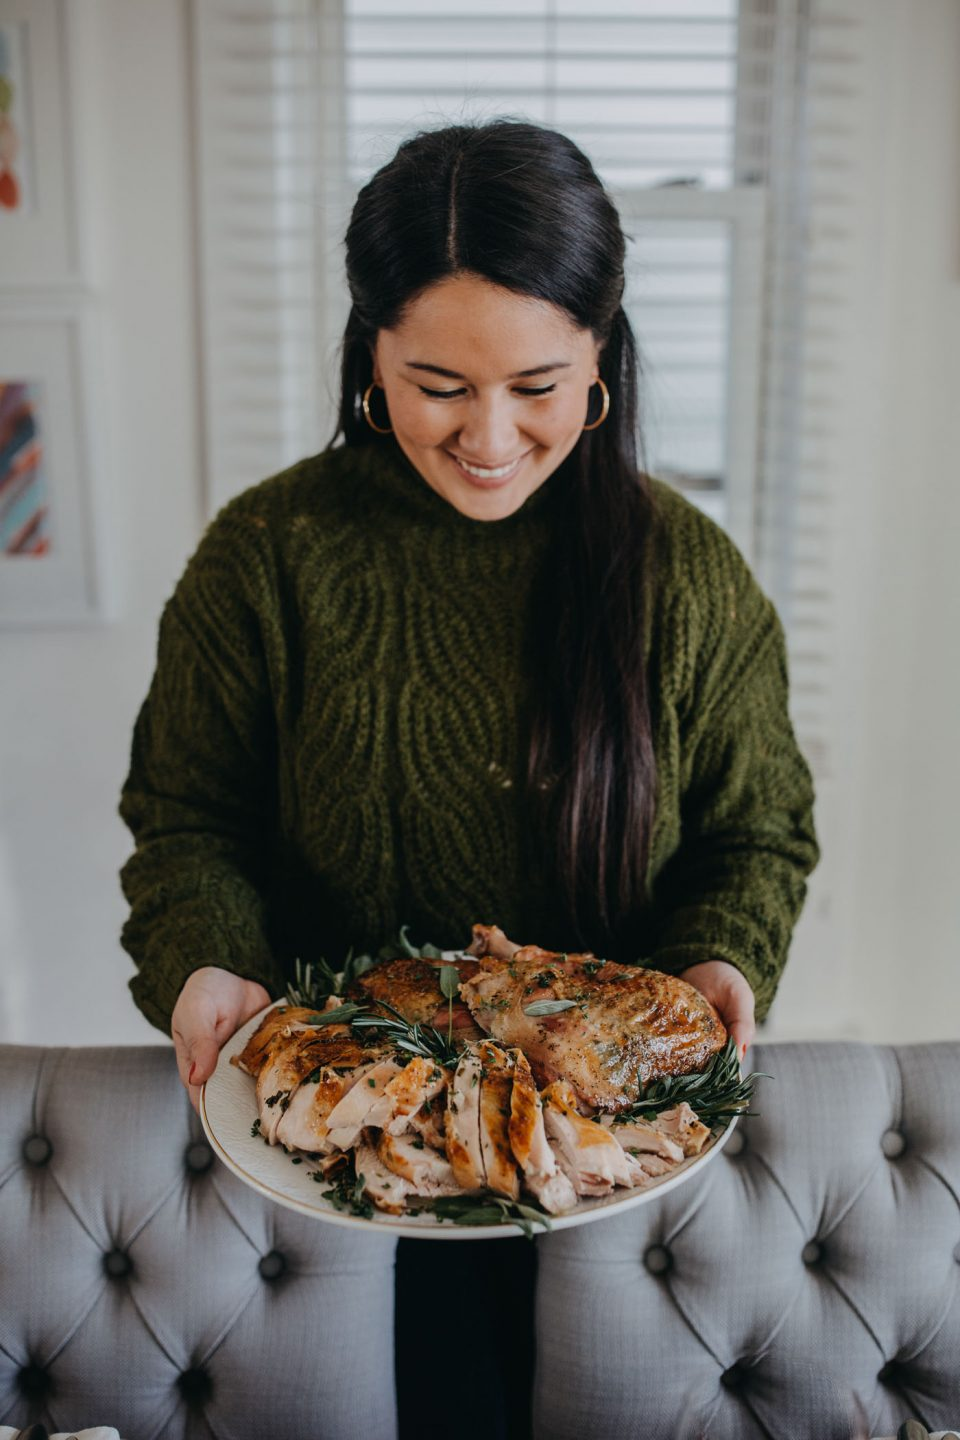 Dark-haired woman in a green sweater holds a plate of carved turkey, in front of a festive tablescape & a full Thanksgiving dinner spread.